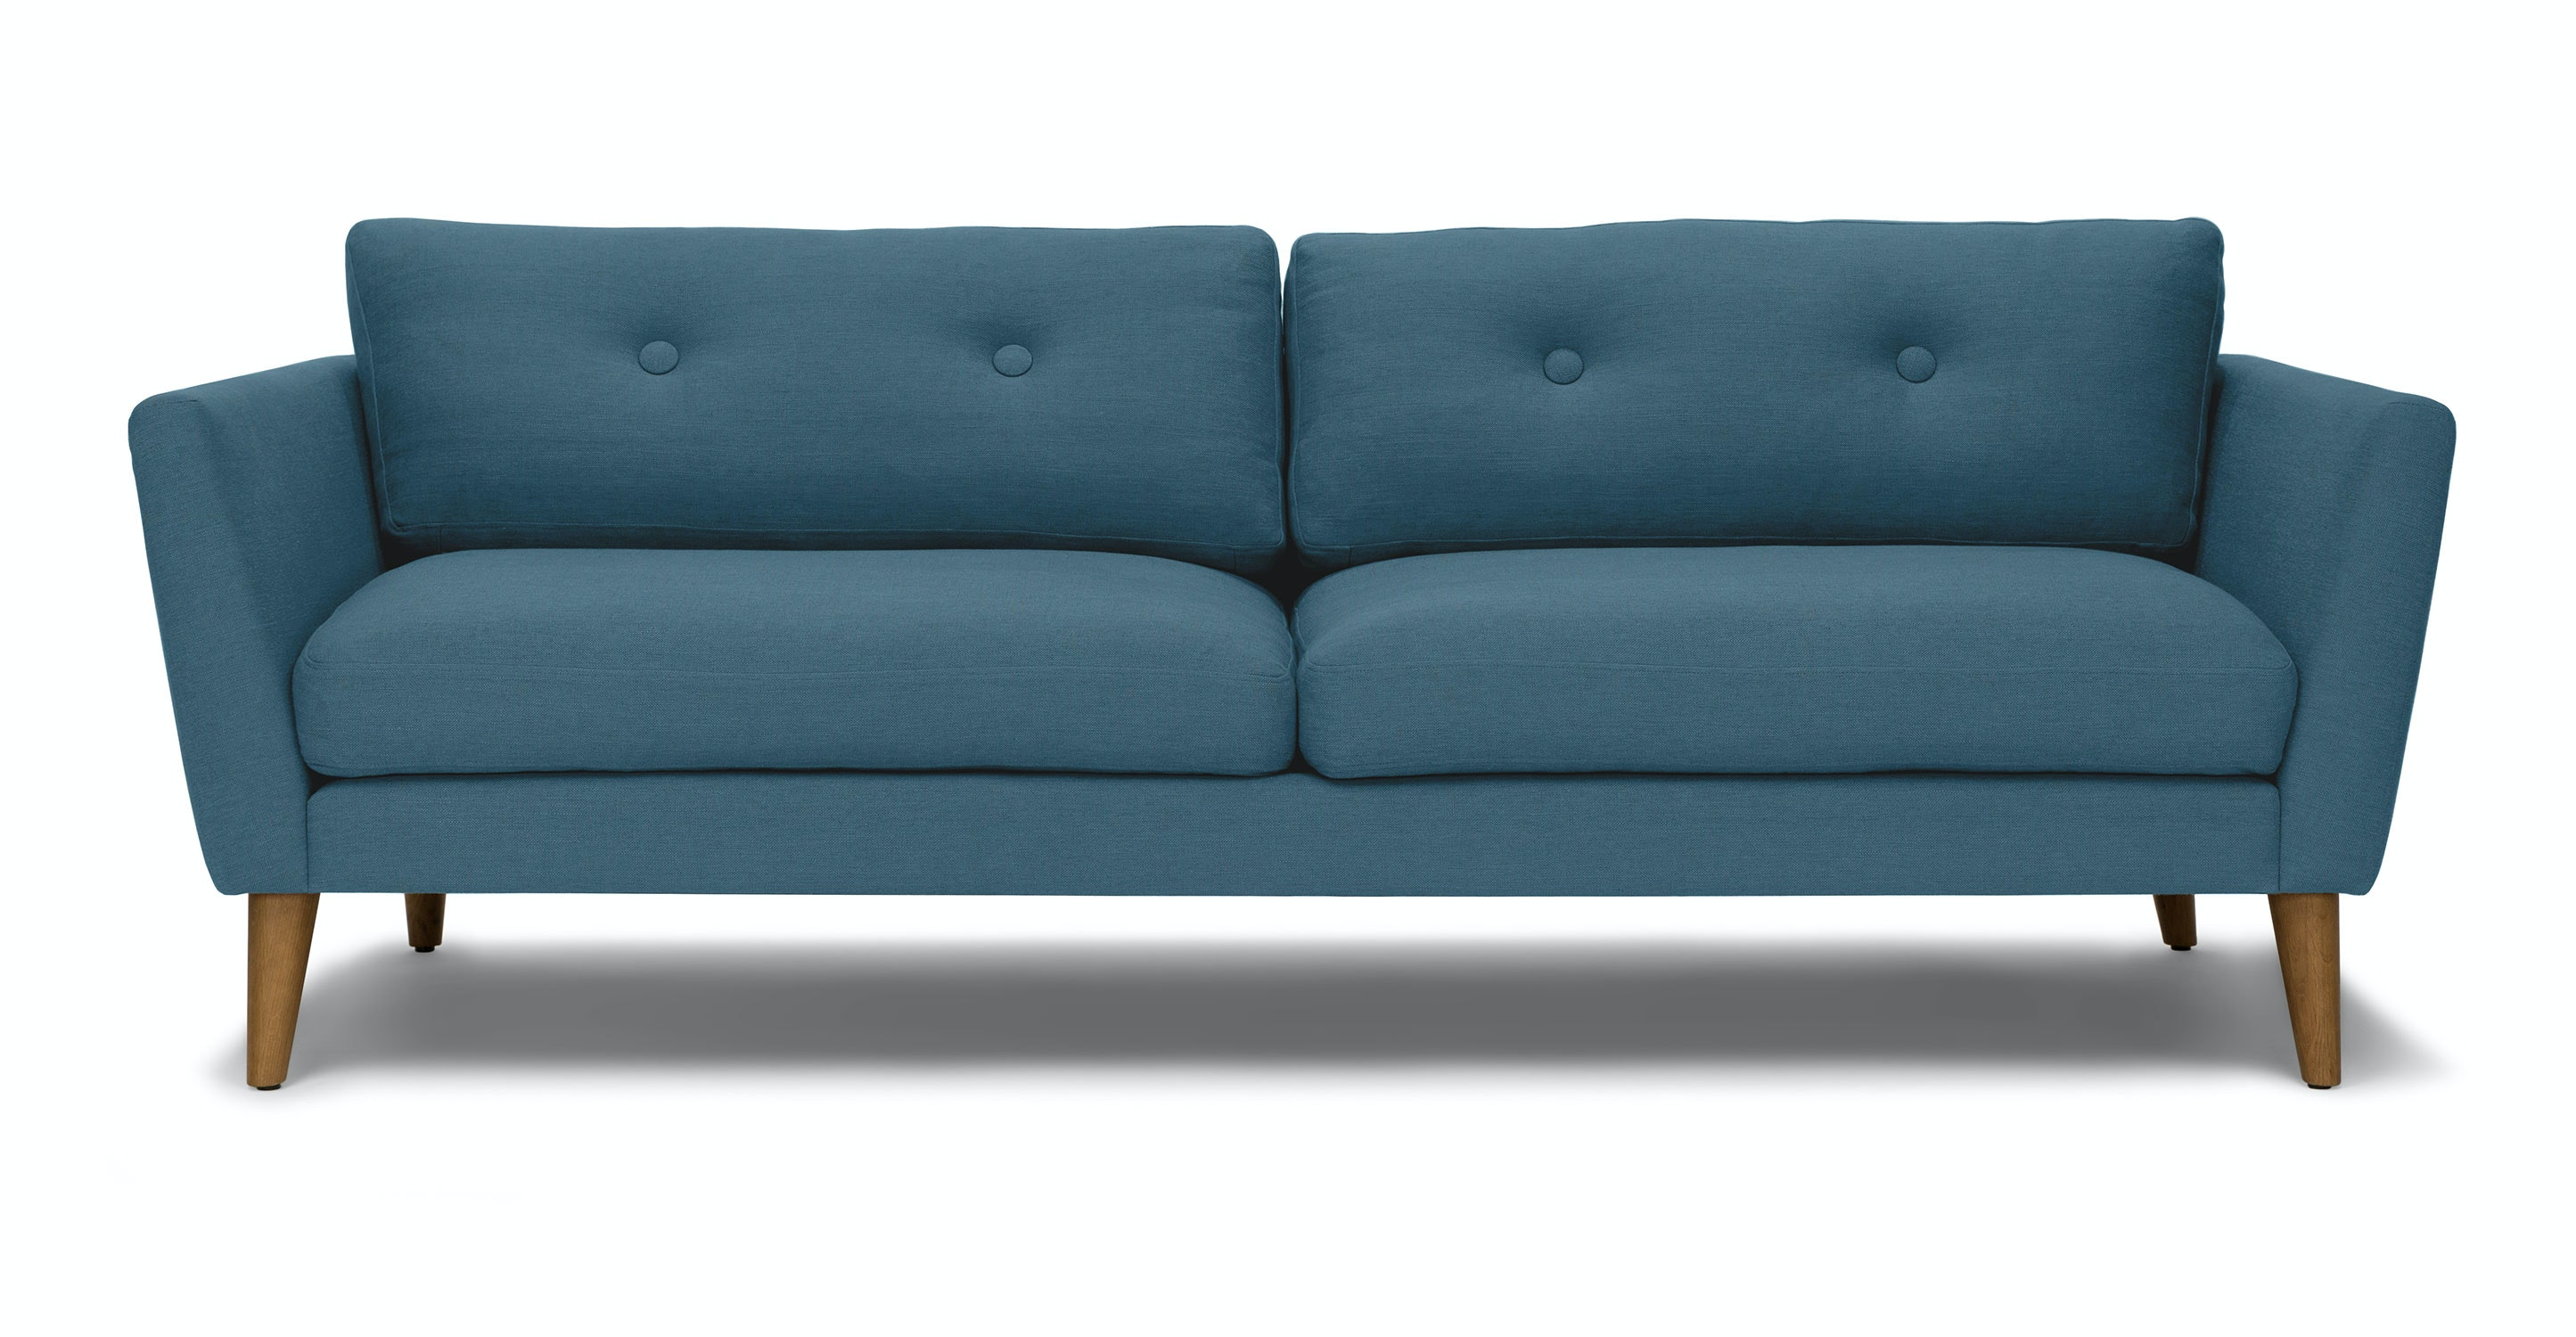 Incroyable Emil Marine Blue Sofa   Sofas   Article | Modern, Mid Century And  Scandinavian Furniture